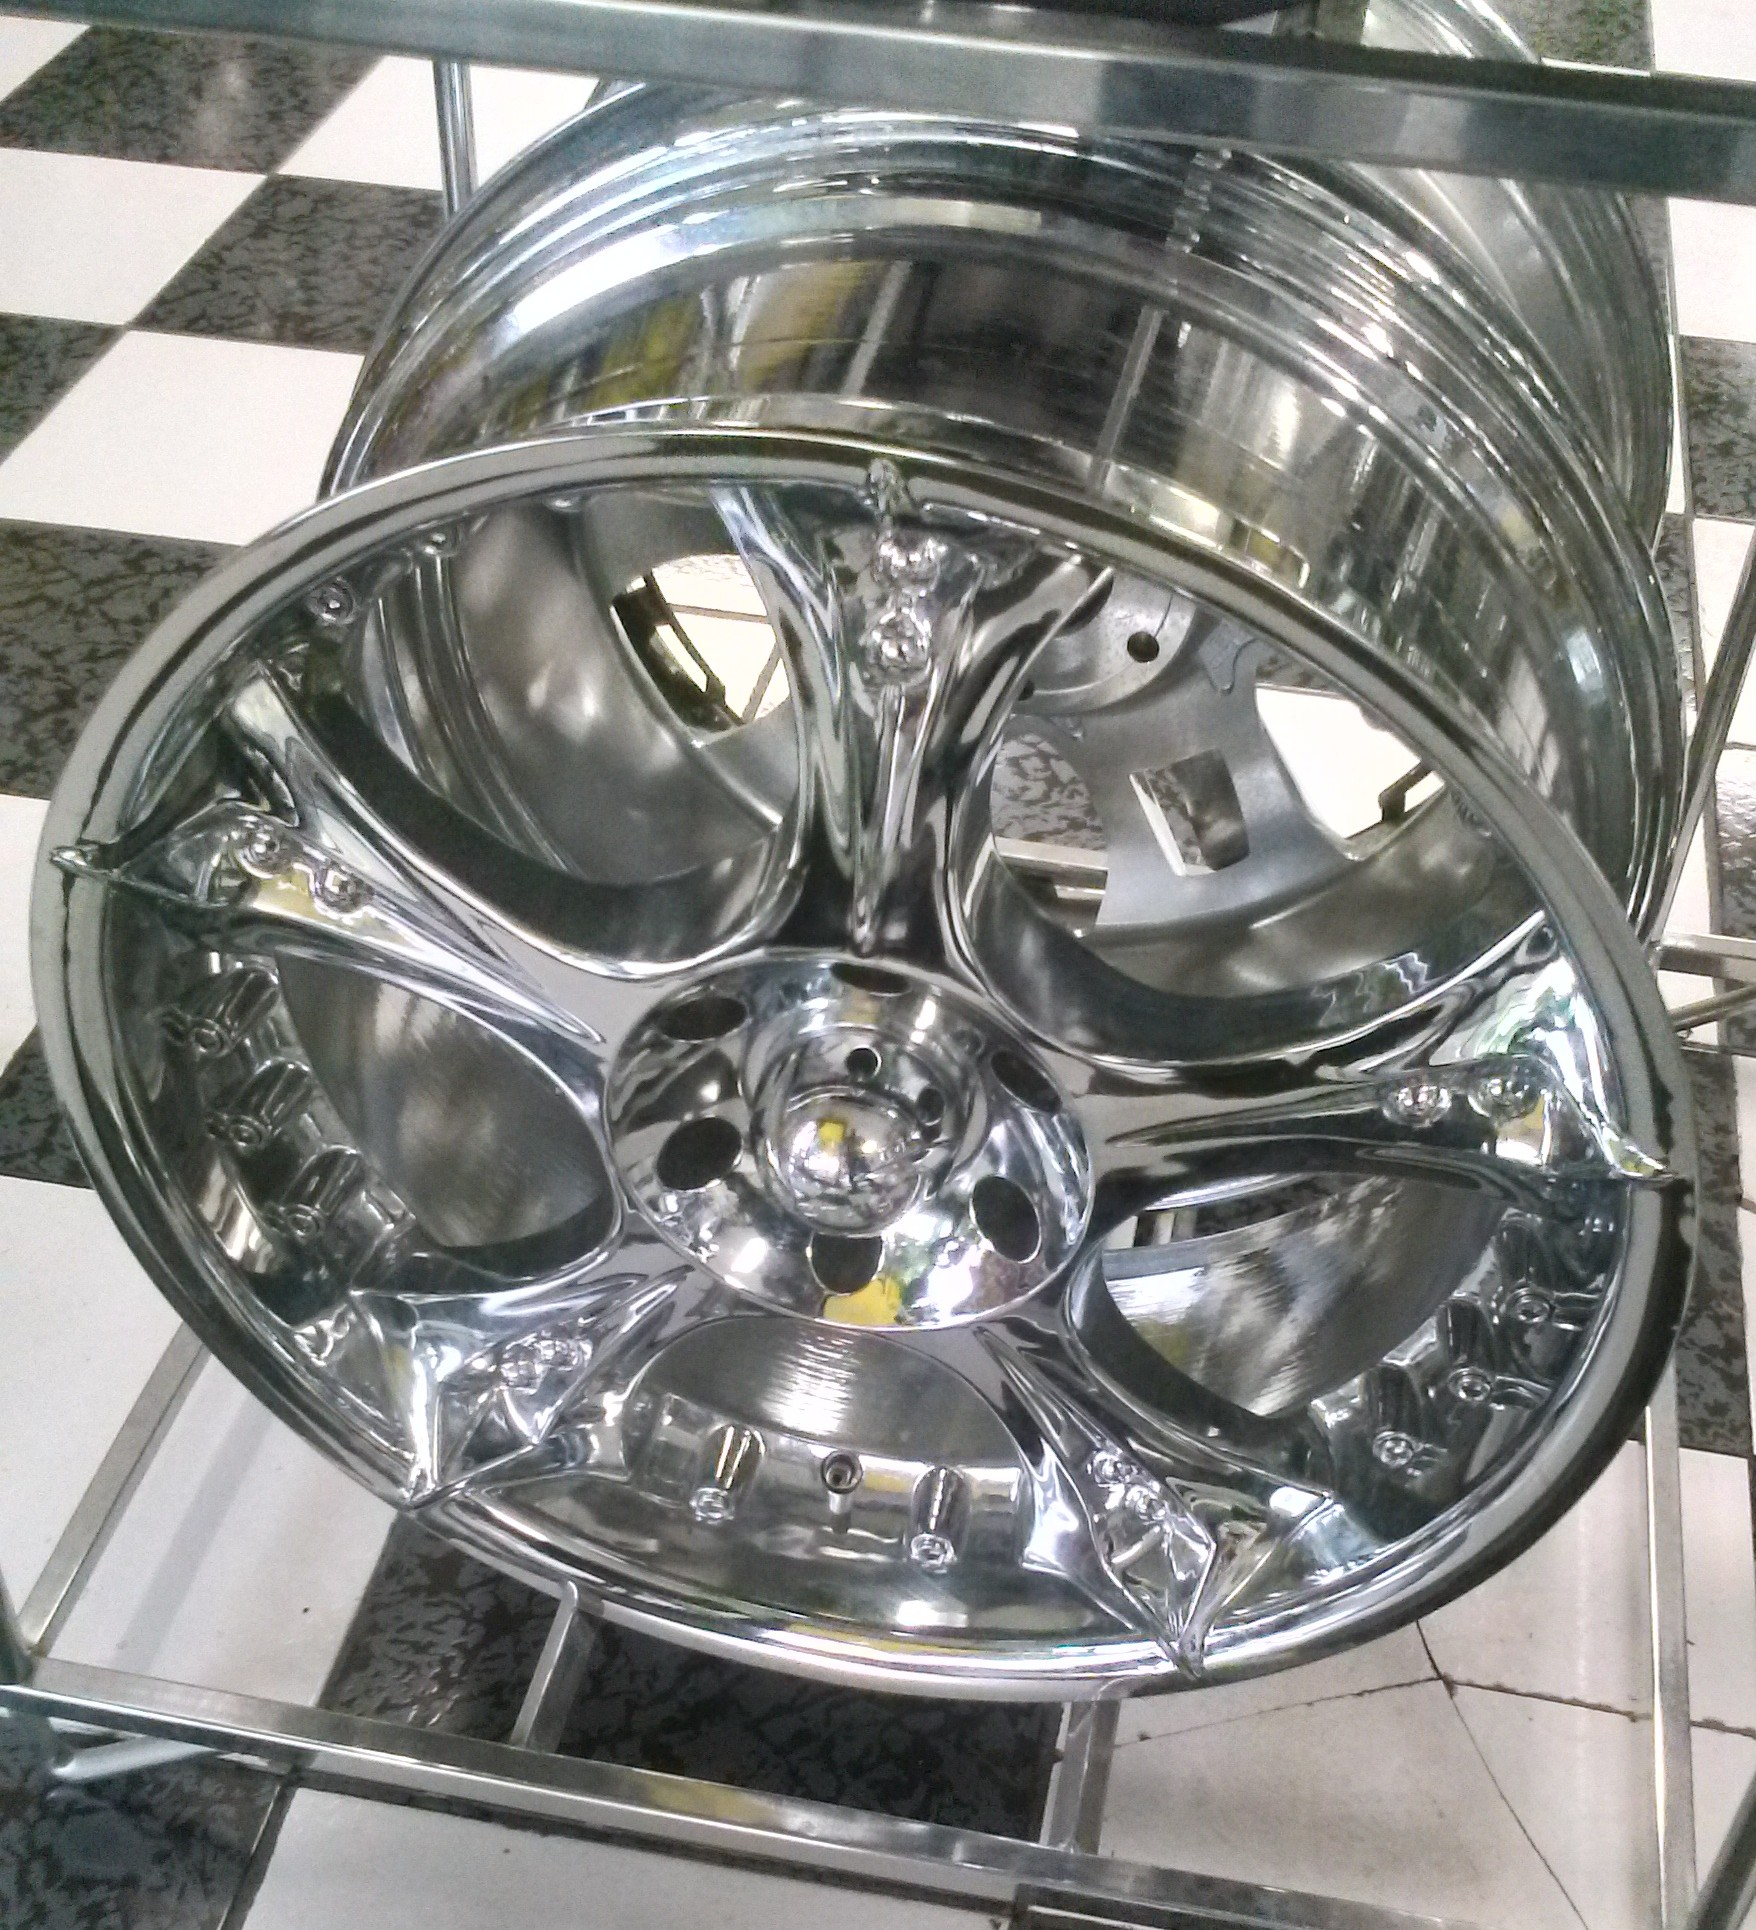 22 Chrome wheel form Devino with a bolt pattern of 6x139 All four wheels are on sale for 799 We